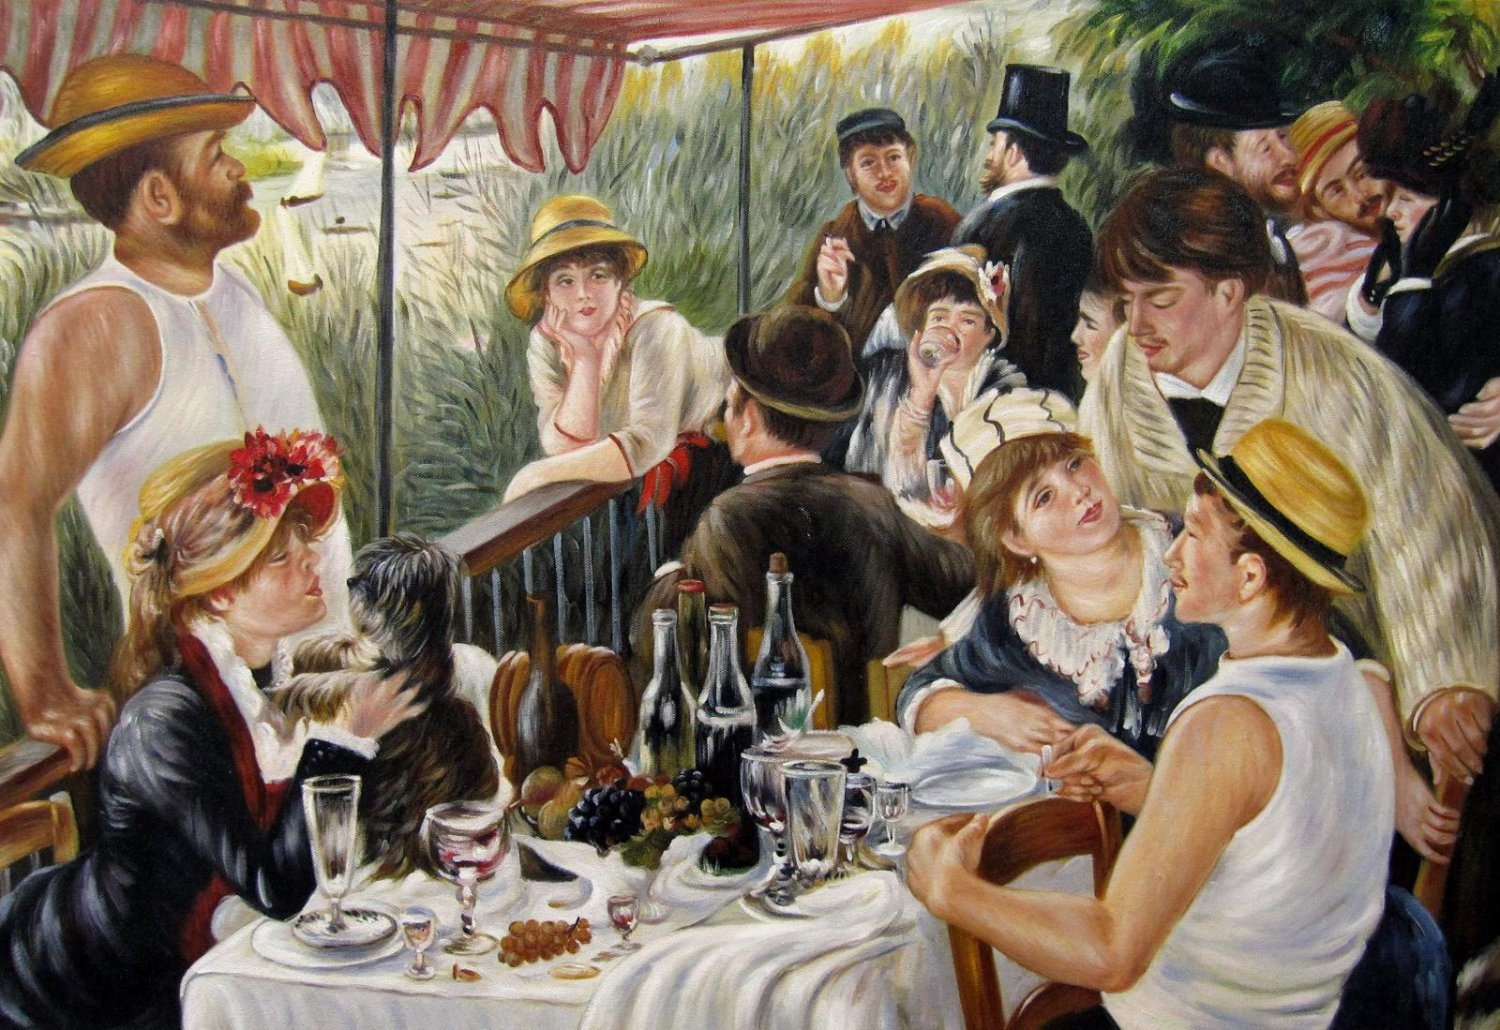 Rep. Pierre Auguste Renoir 24x36 in. stretched Oil Painting Canvas Art Wall Decor modernneD